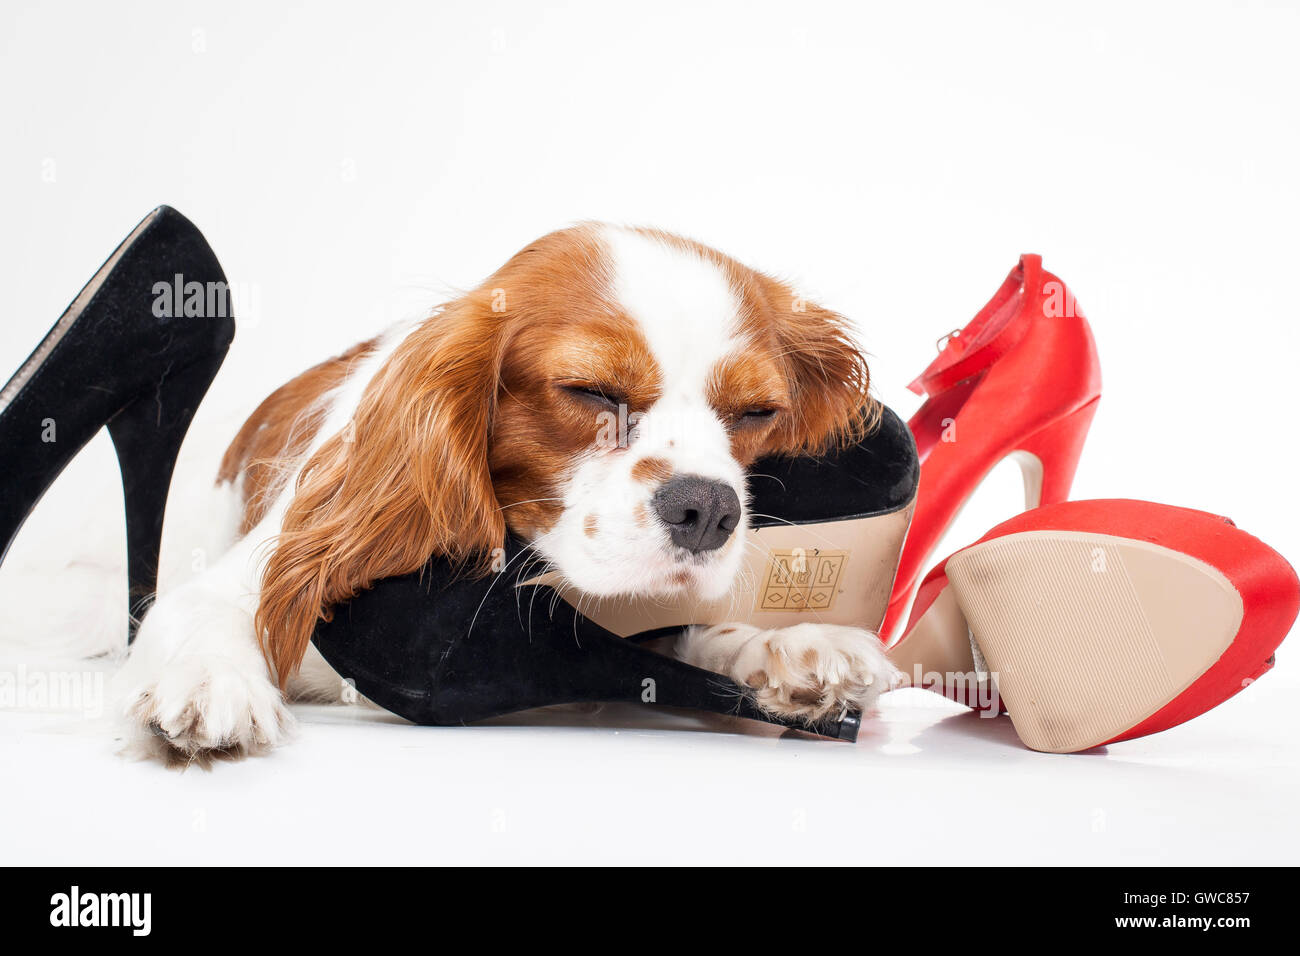 Trained cavalier king charles spaniel studio white background photography. Dog with high heels,dogs behavior chew - Stock Image